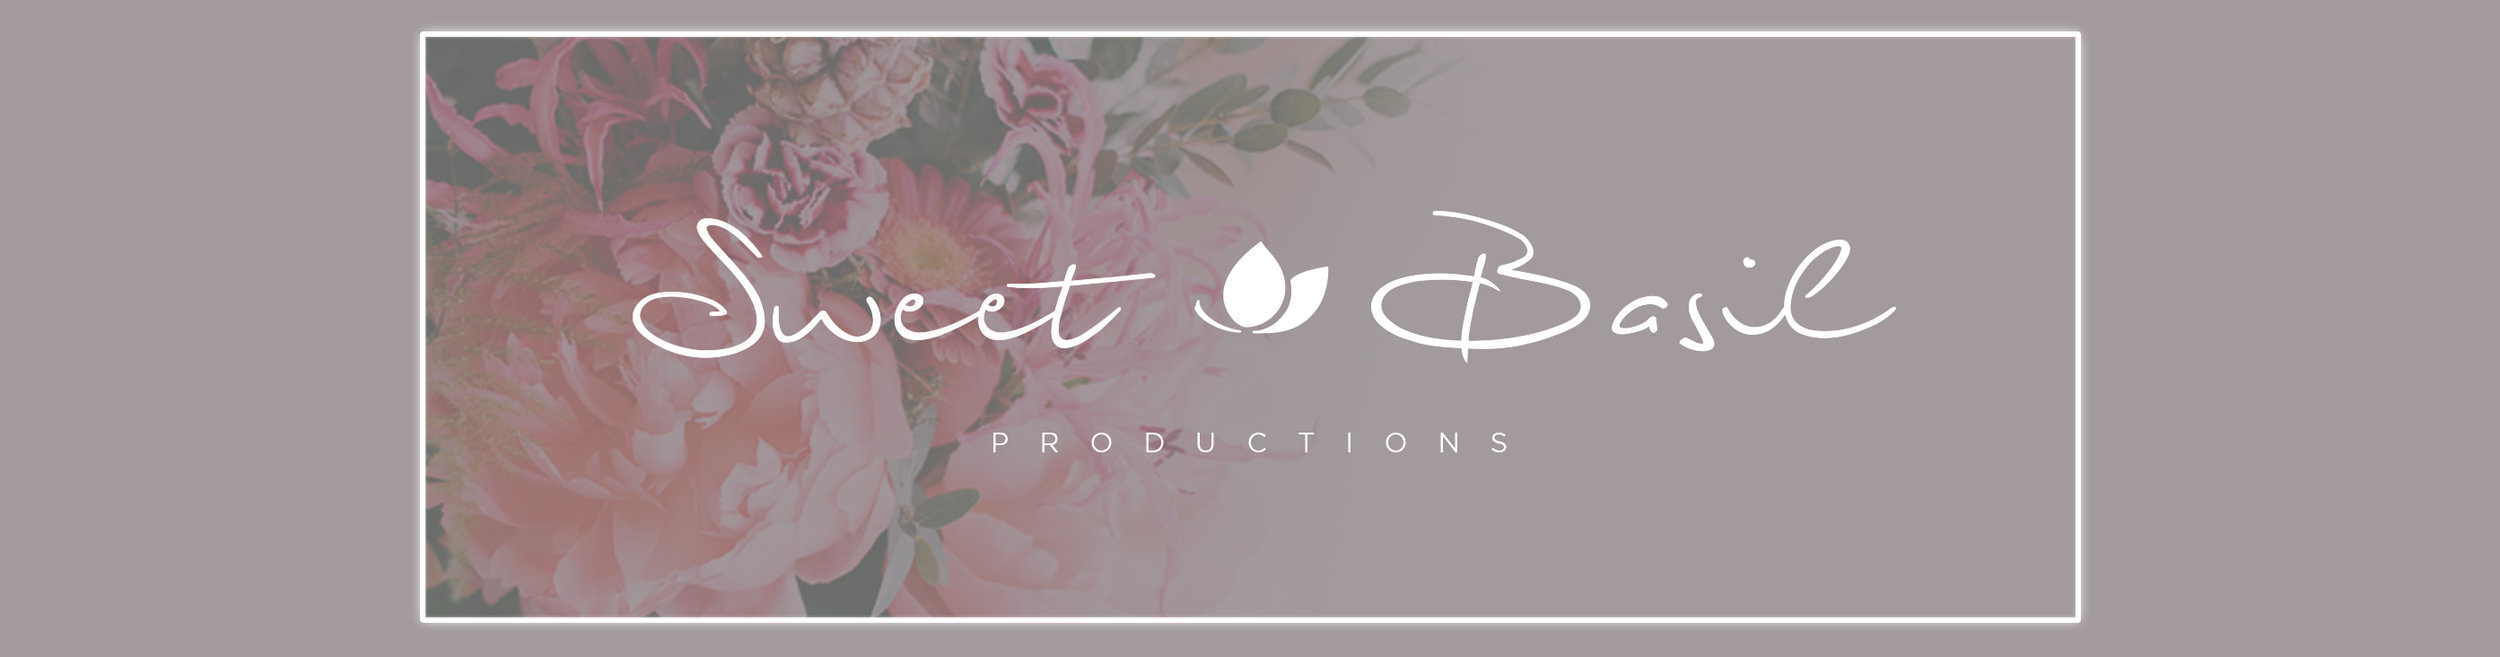 Sweet Basil Productions